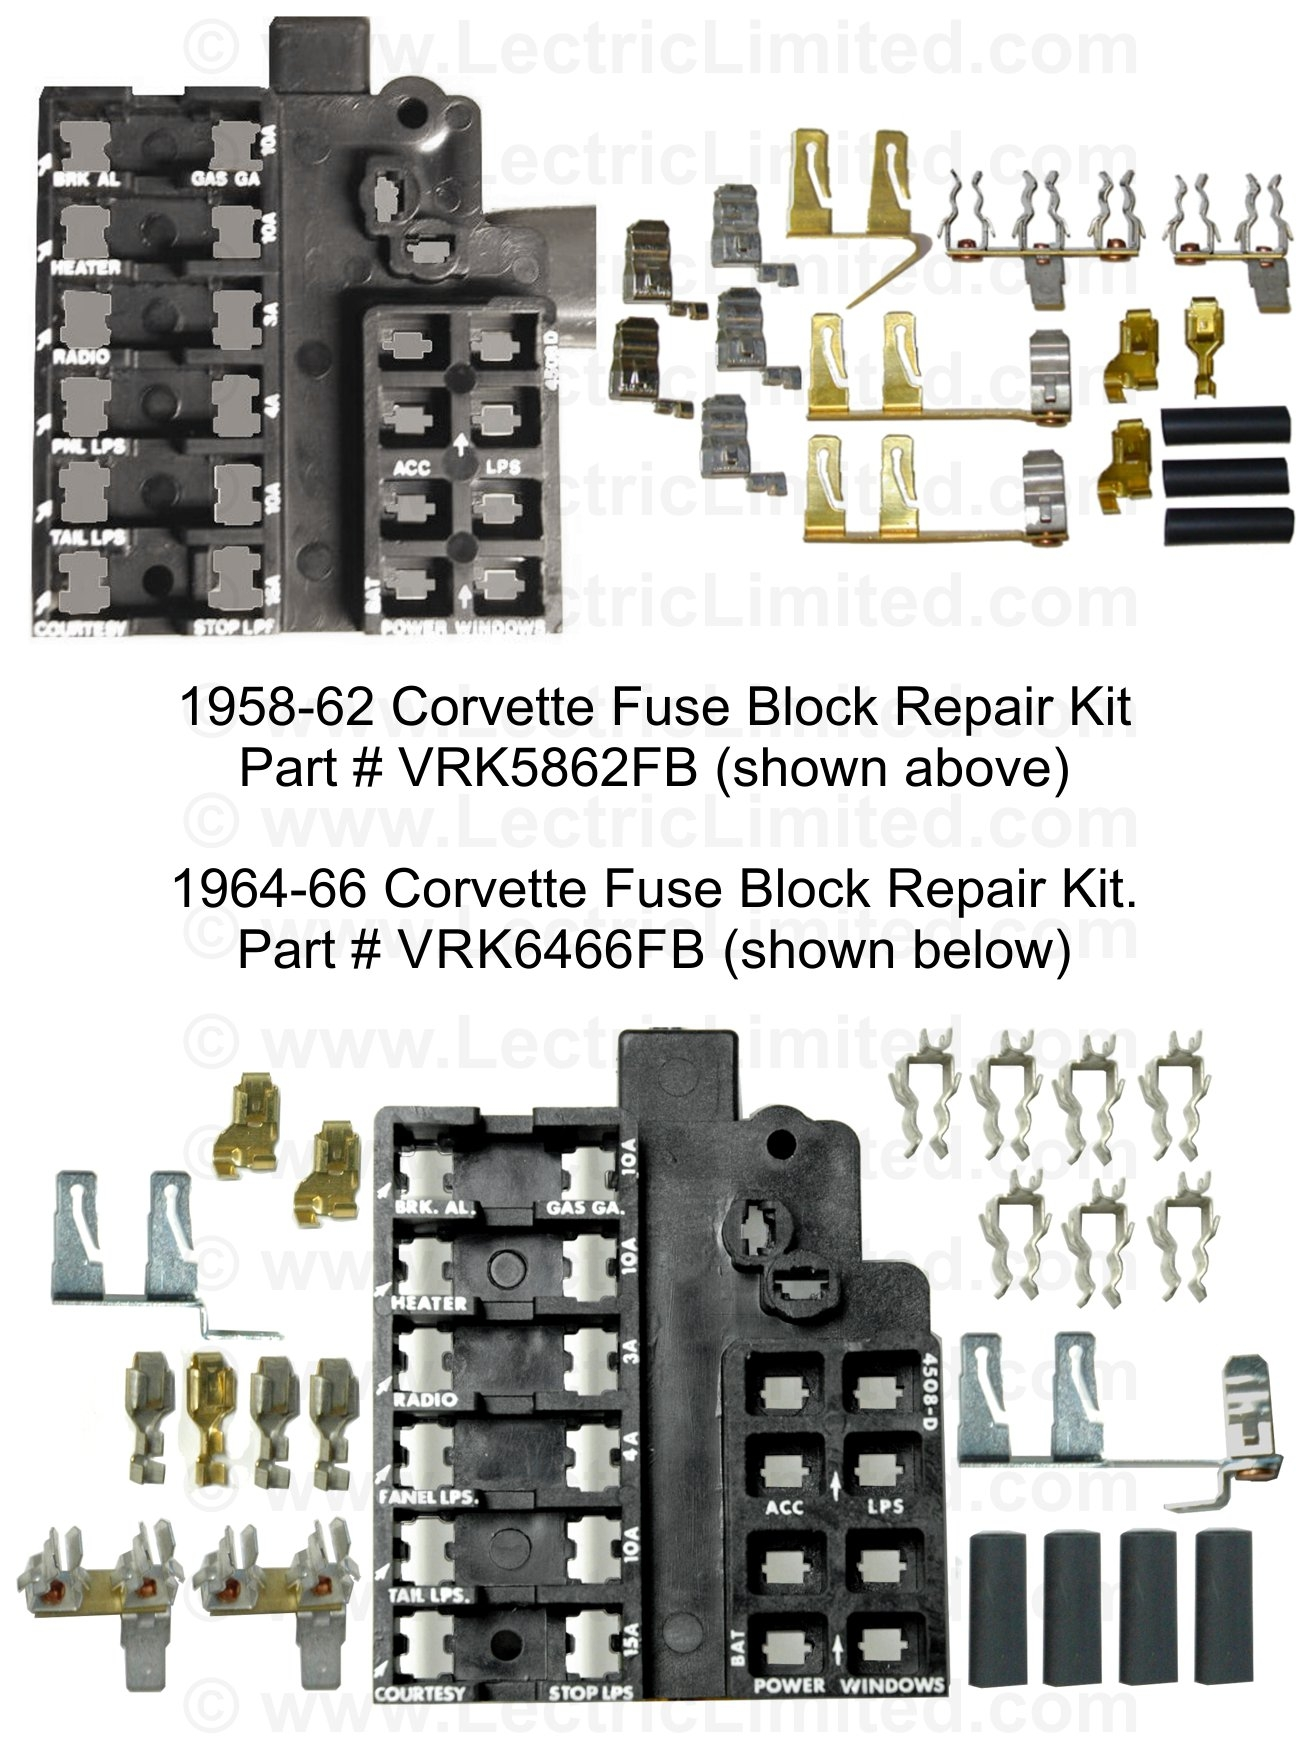 fuse_block_repair_kits repair components 1969 c10 fuse box diagram at readyjetset.co